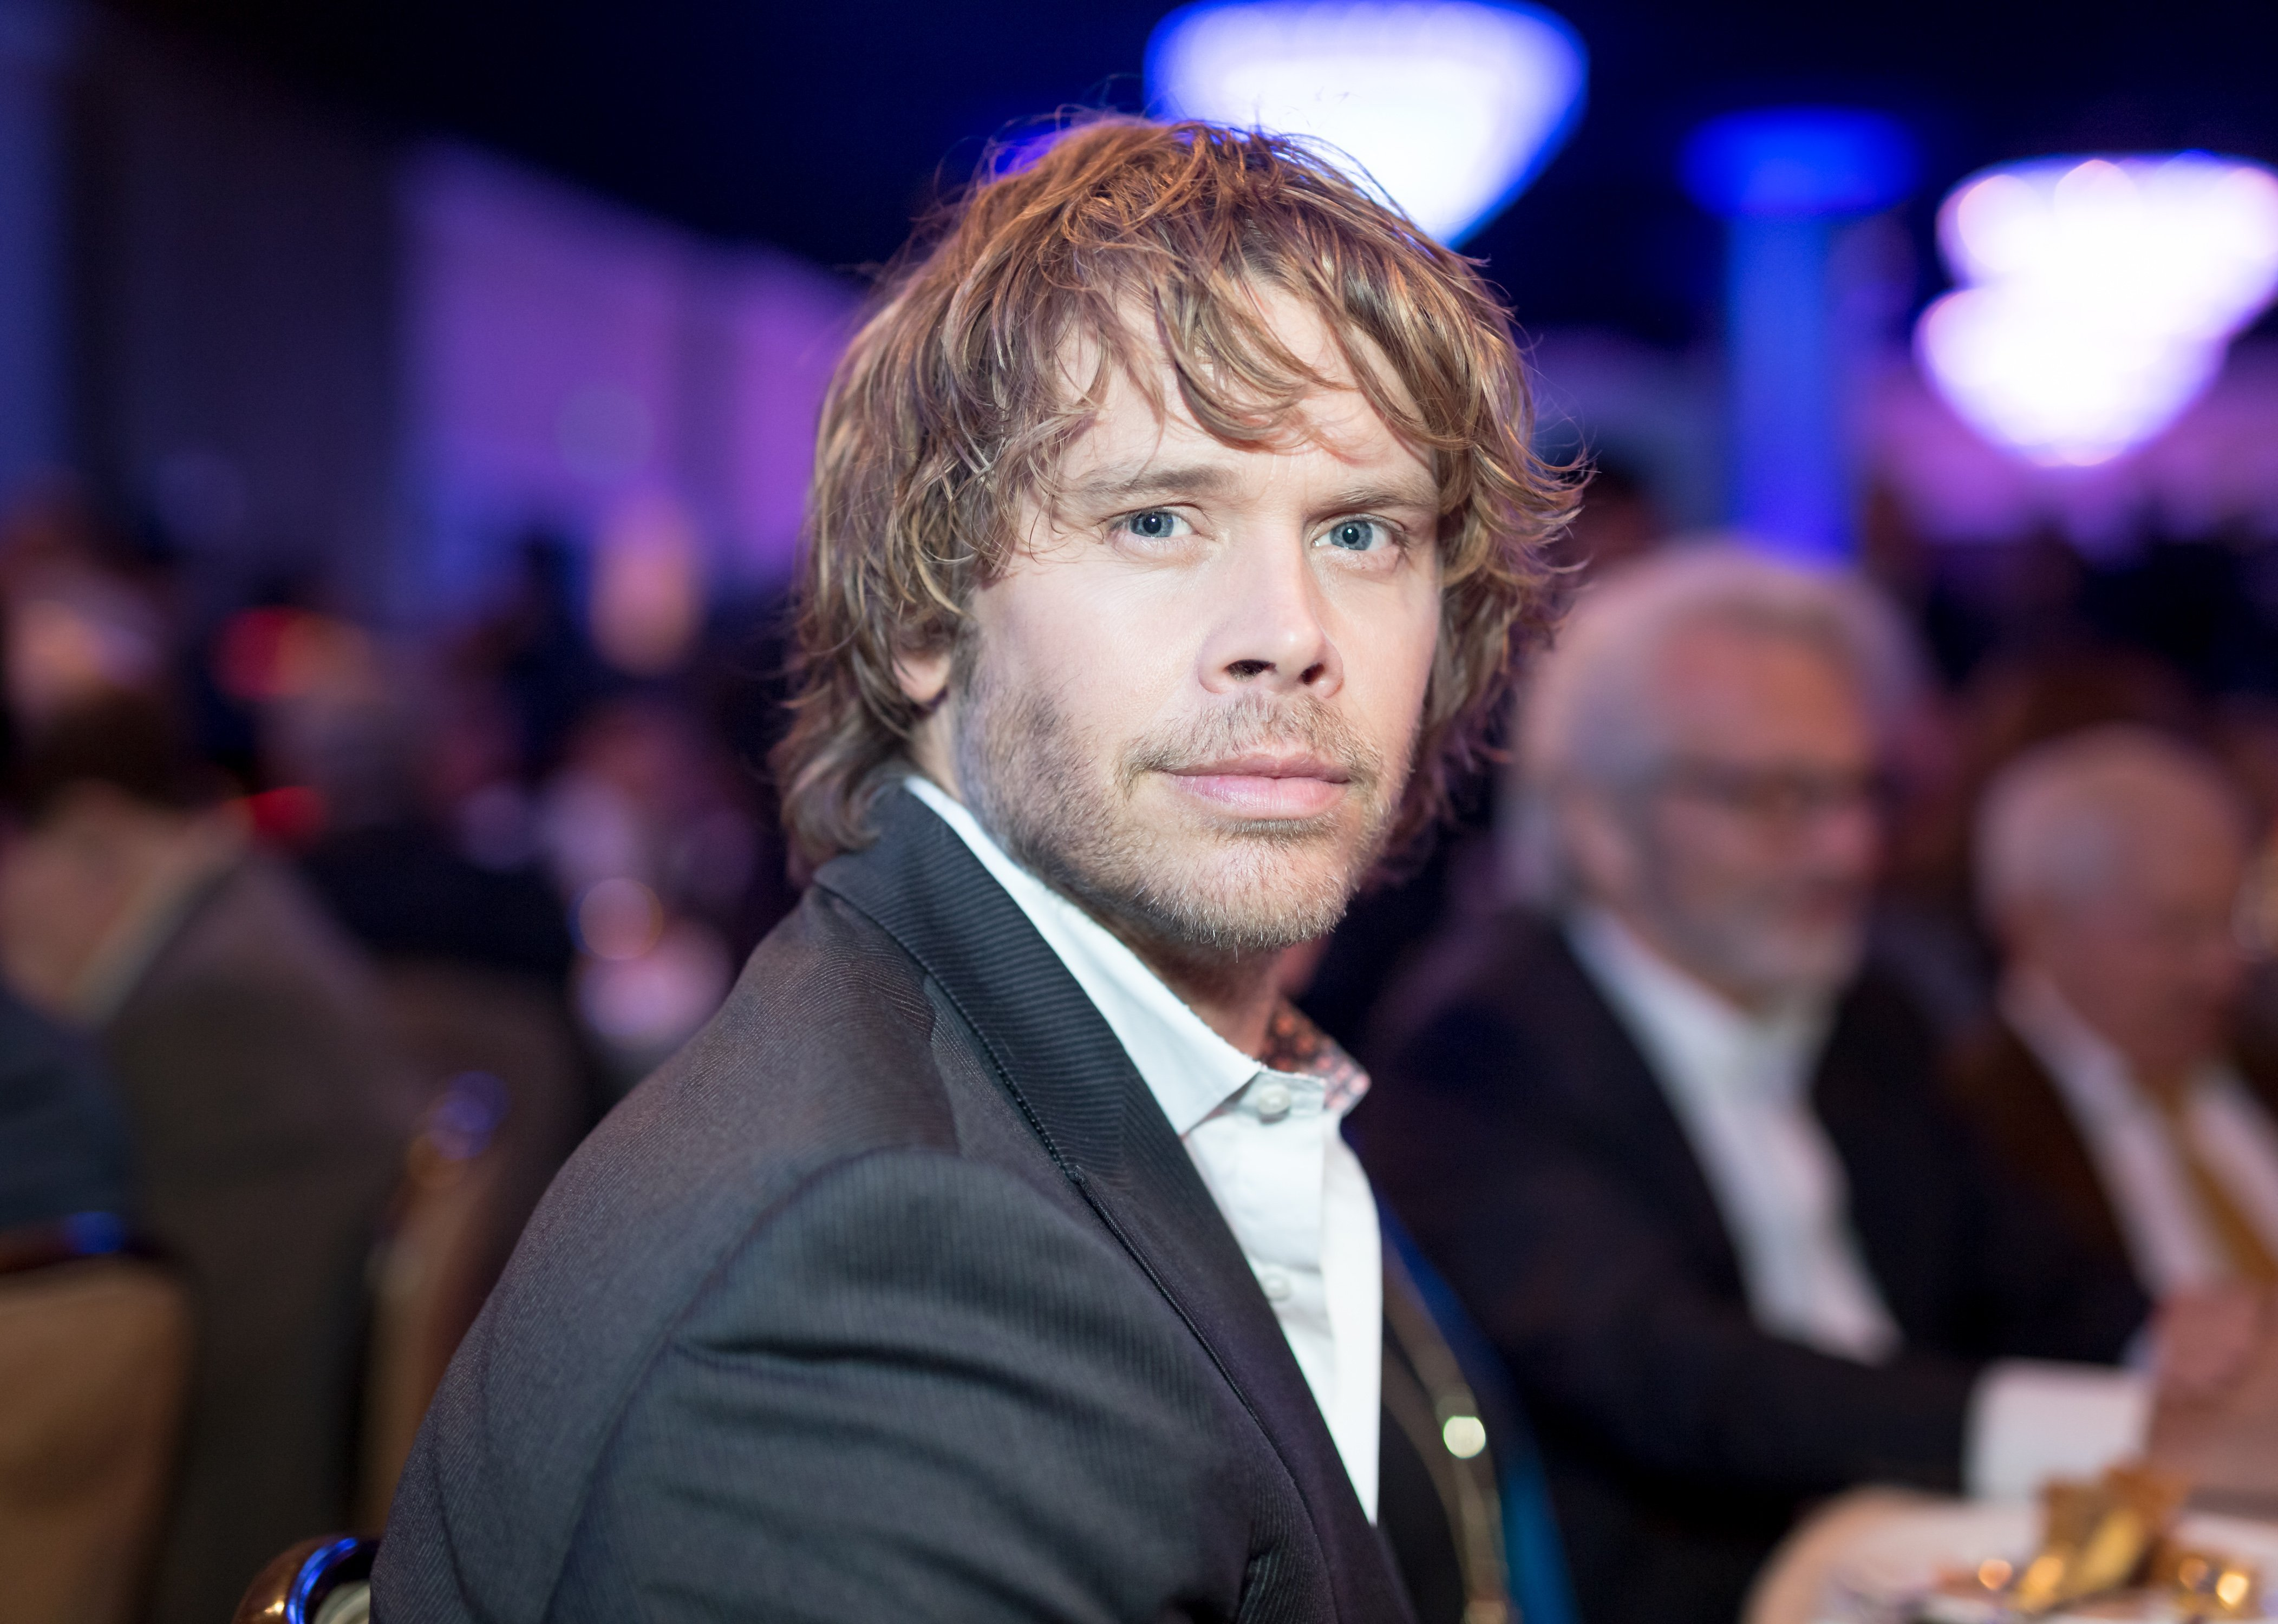 Eric Olsen on March 2, 2017 in Beverly Hills, California | Source: Getty Images/Global Images Ukraine